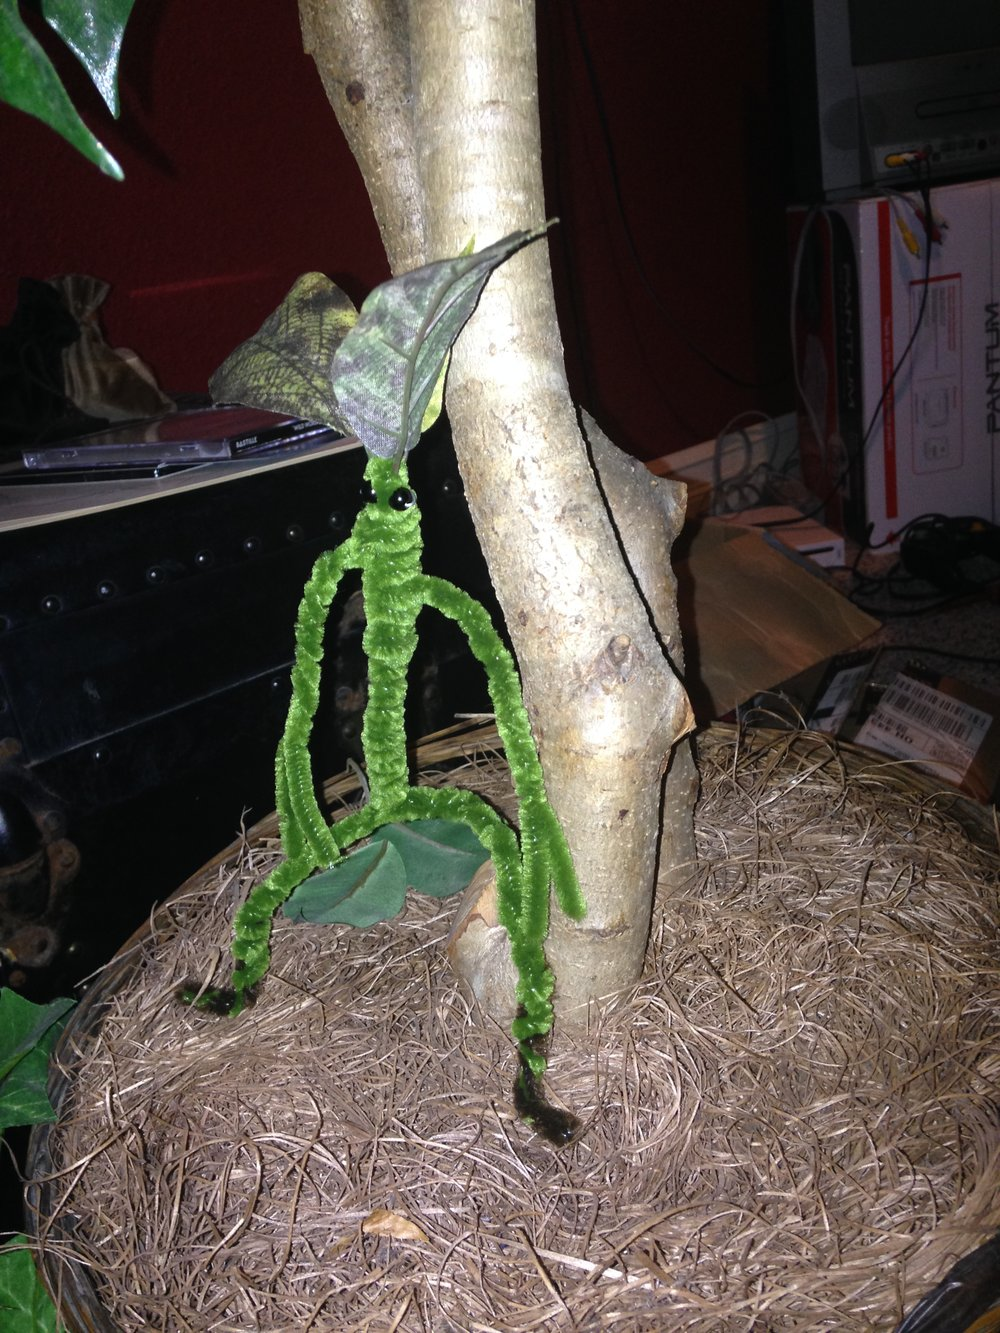 One of the fan favorites from the film Fantastic Beasts and Where to Find Them, the bowtruckle was one of the first magical creatures I figured out how to produce, and one of the ones I can make expeditiously enough to sell.